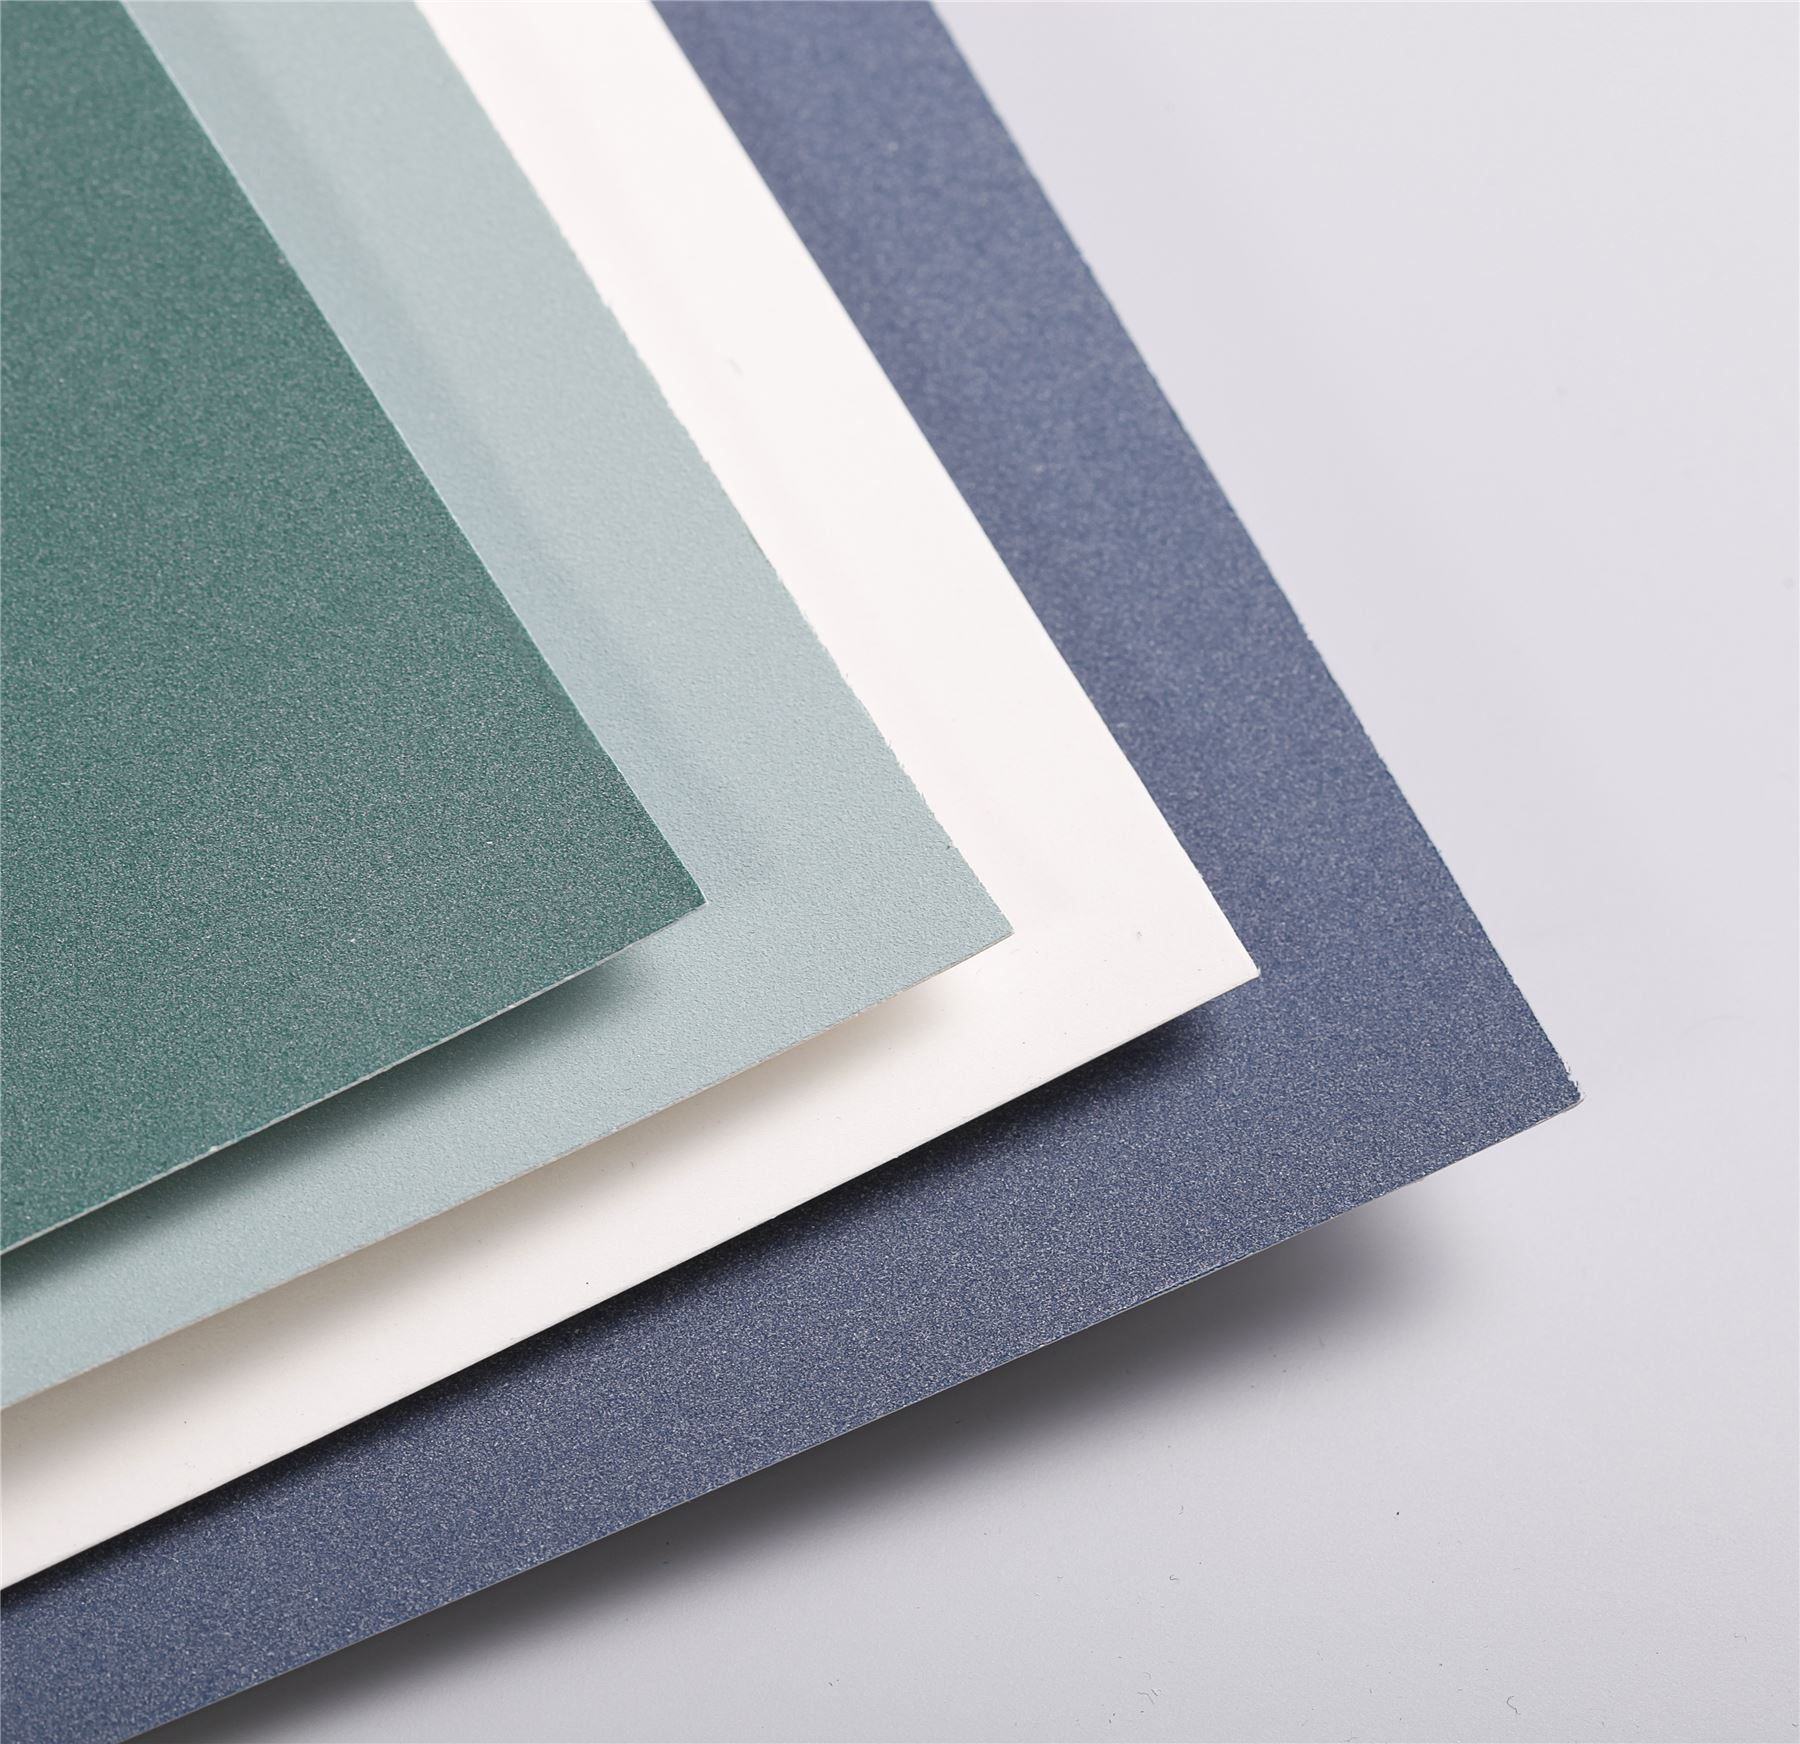 Clairefontaine-PastelMat-Pads-6-pad-choices-in-assorted-colours-amp-sizes thumbnail 32